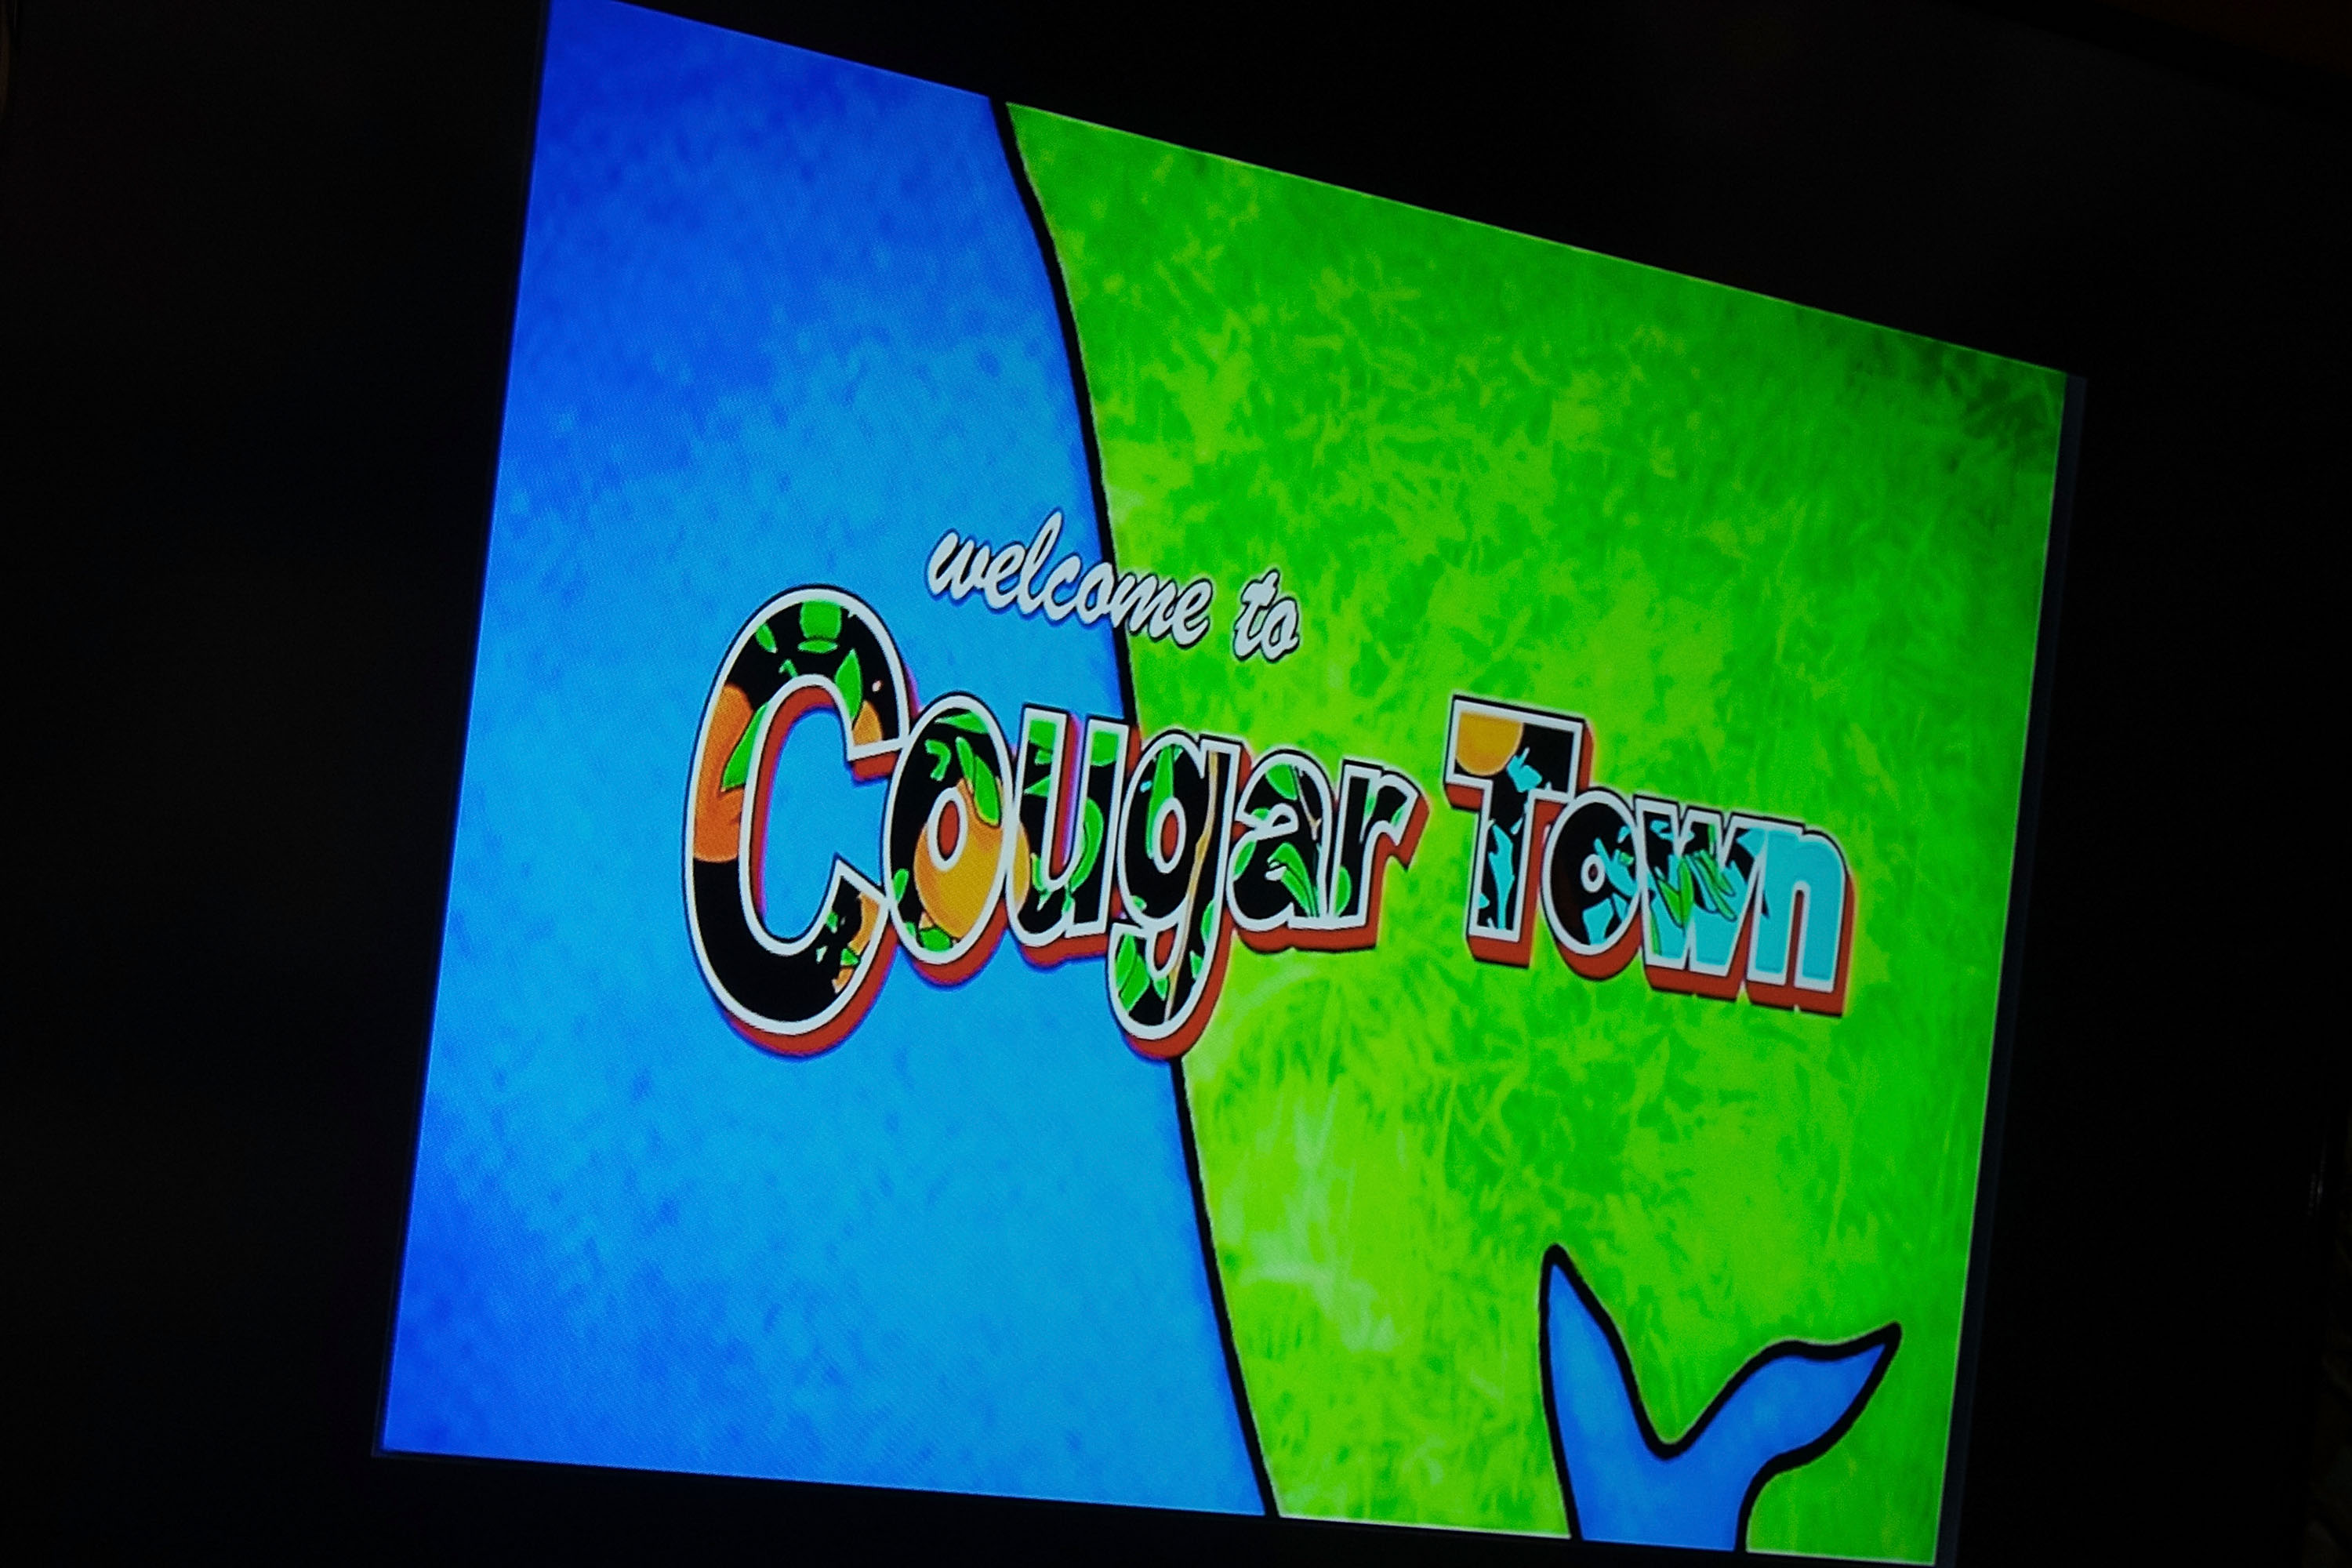 Cougar Town Celebrates their Series Finale Featuring KETEL ONE VODKA Cocktails